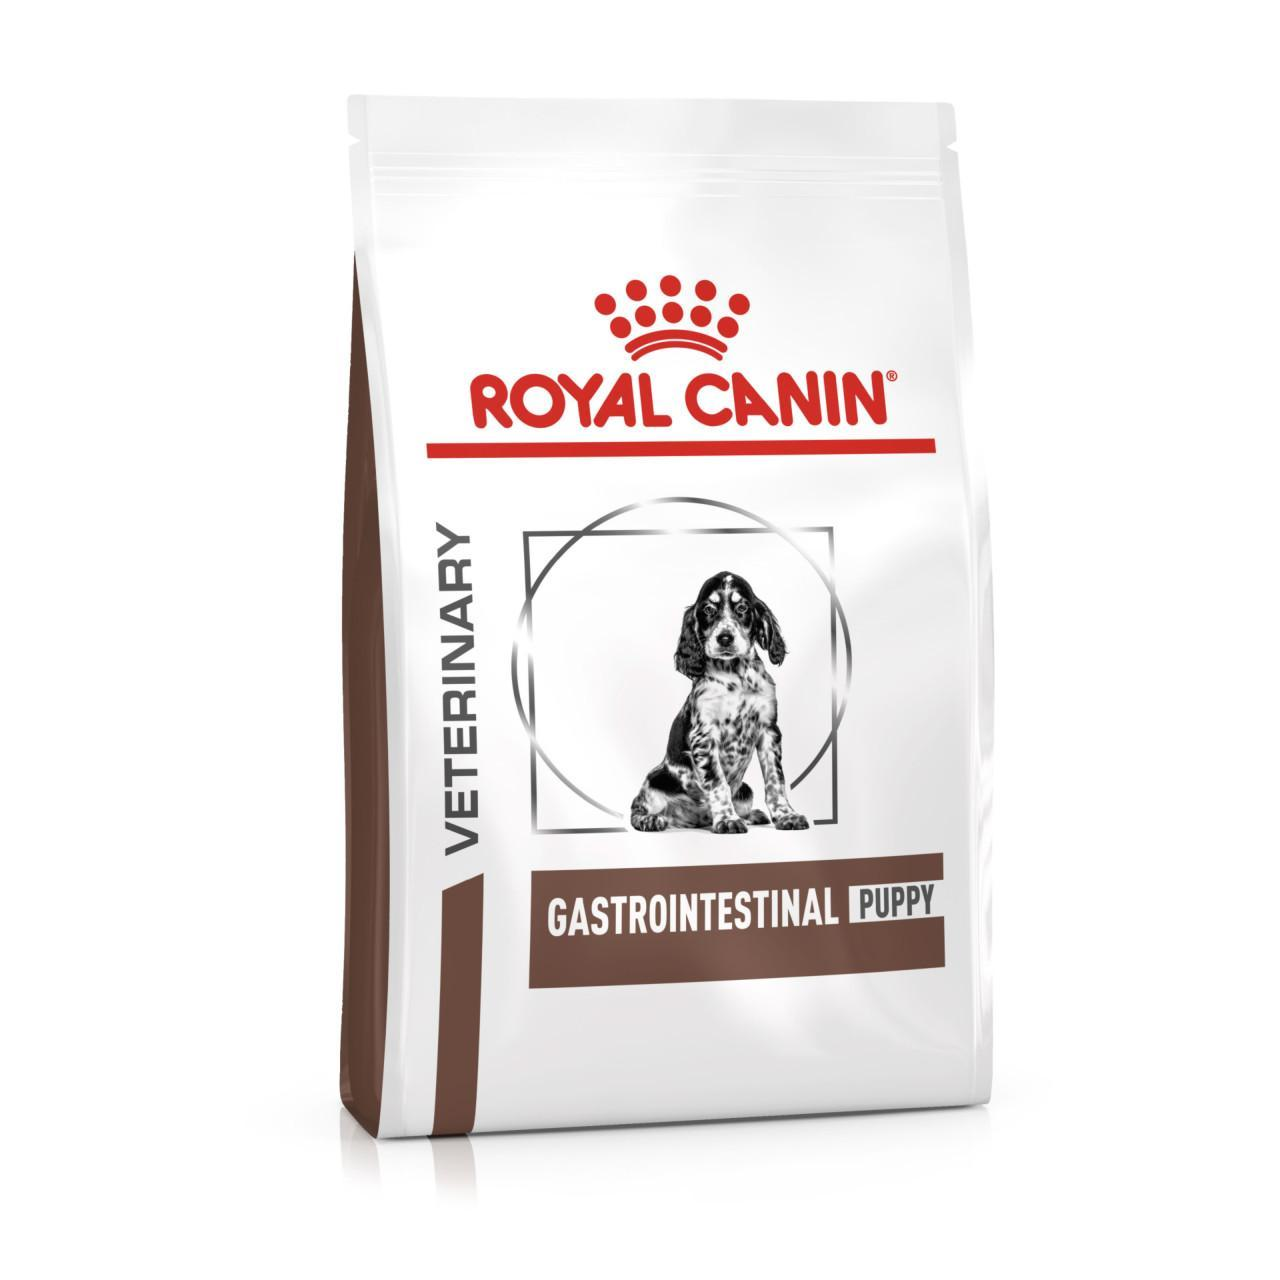 royal canin canine gastro inte at the online. Black Bedroom Furniture Sets. Home Design Ideas